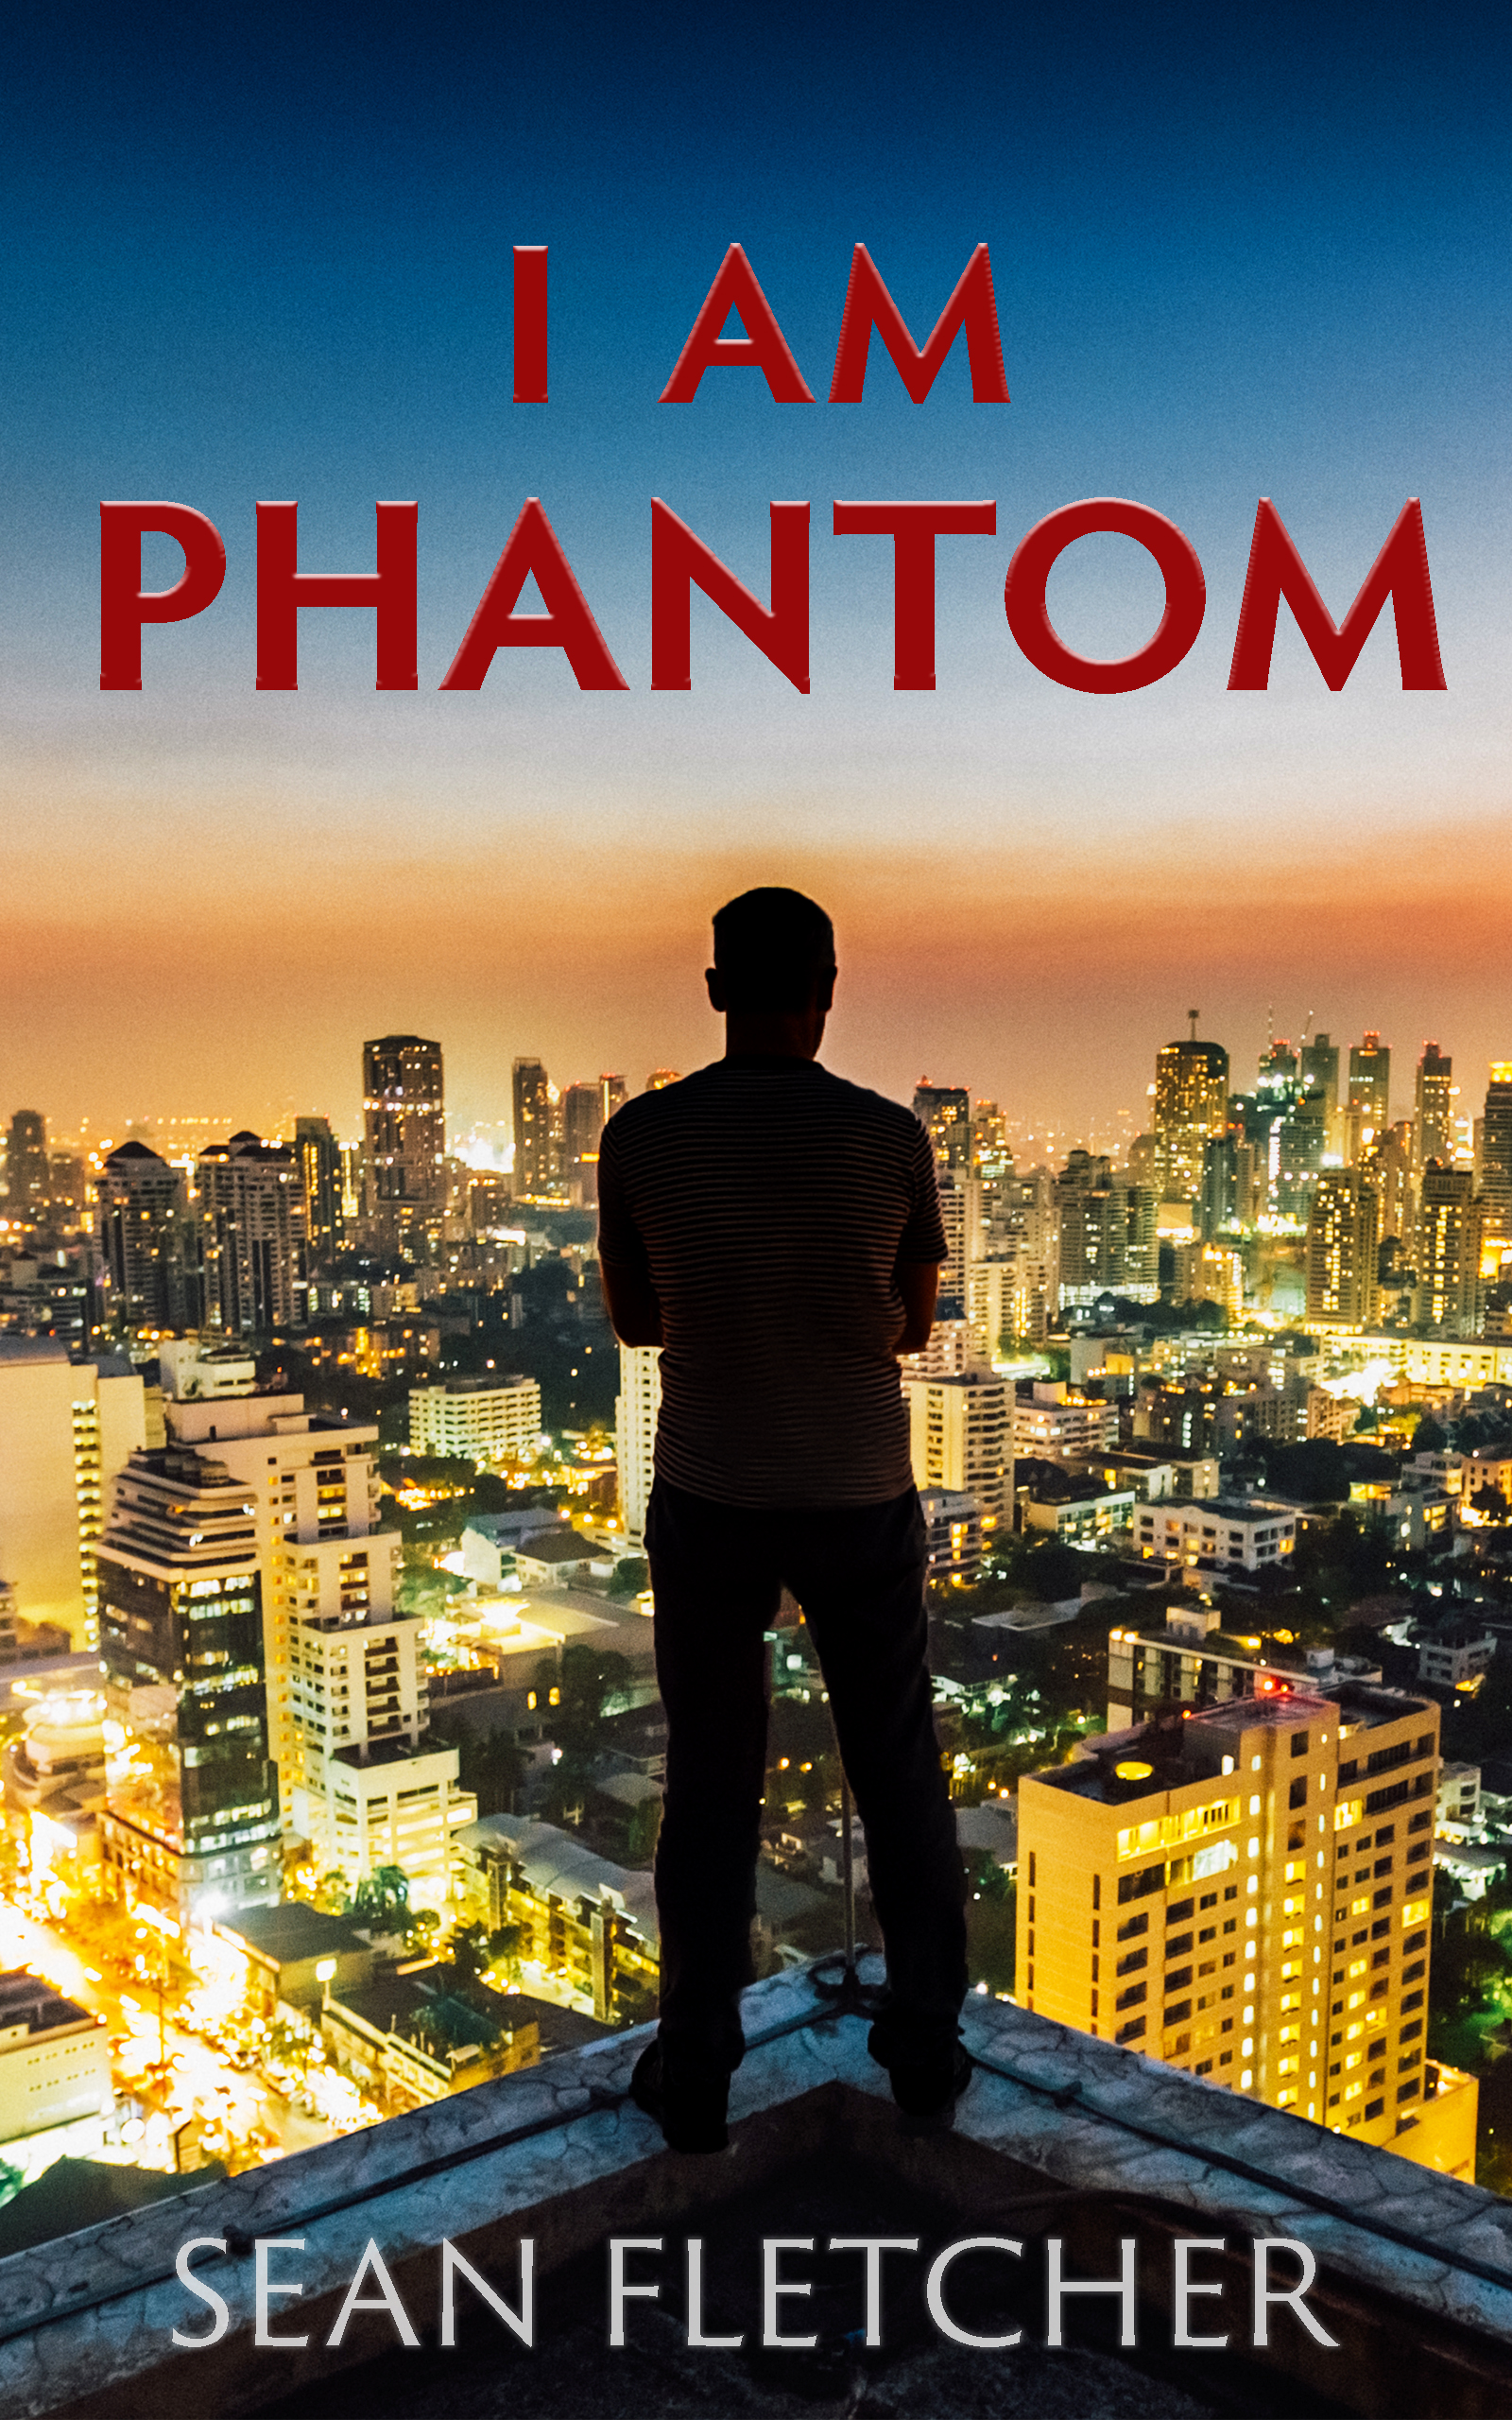 I Am Phantom - With great power…comes a whole lot of trouble…What if you had superpowers? Inexplicable. Powerful. Dangerous.What if you were desperate to know why?And what if the one man who had the answers…was a psychopath?Drake Sinclair will do anything to discover the origins of his abilities and protect the people he loves. That includes finding Lucius Sykes, the notorious psychopath 'gifted' with the same abilities as Drake by a long-destroyed illegal organization called Project Midnight.But now Project Midnight is back. And they'll also do anything to finish what they started.